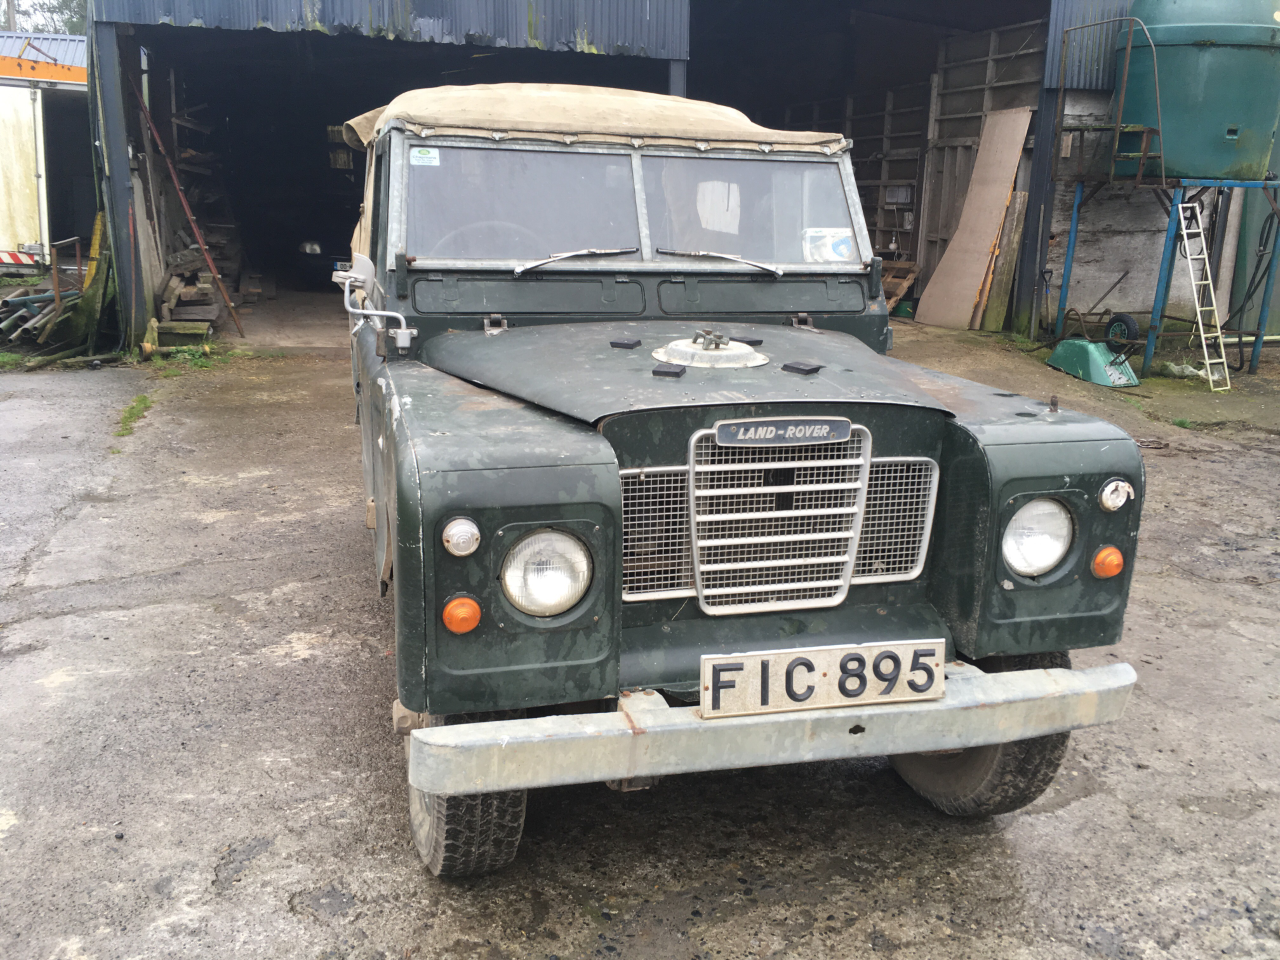 1971 Genuine series 3 landrover 88 For Sale (picture 1 of 6)